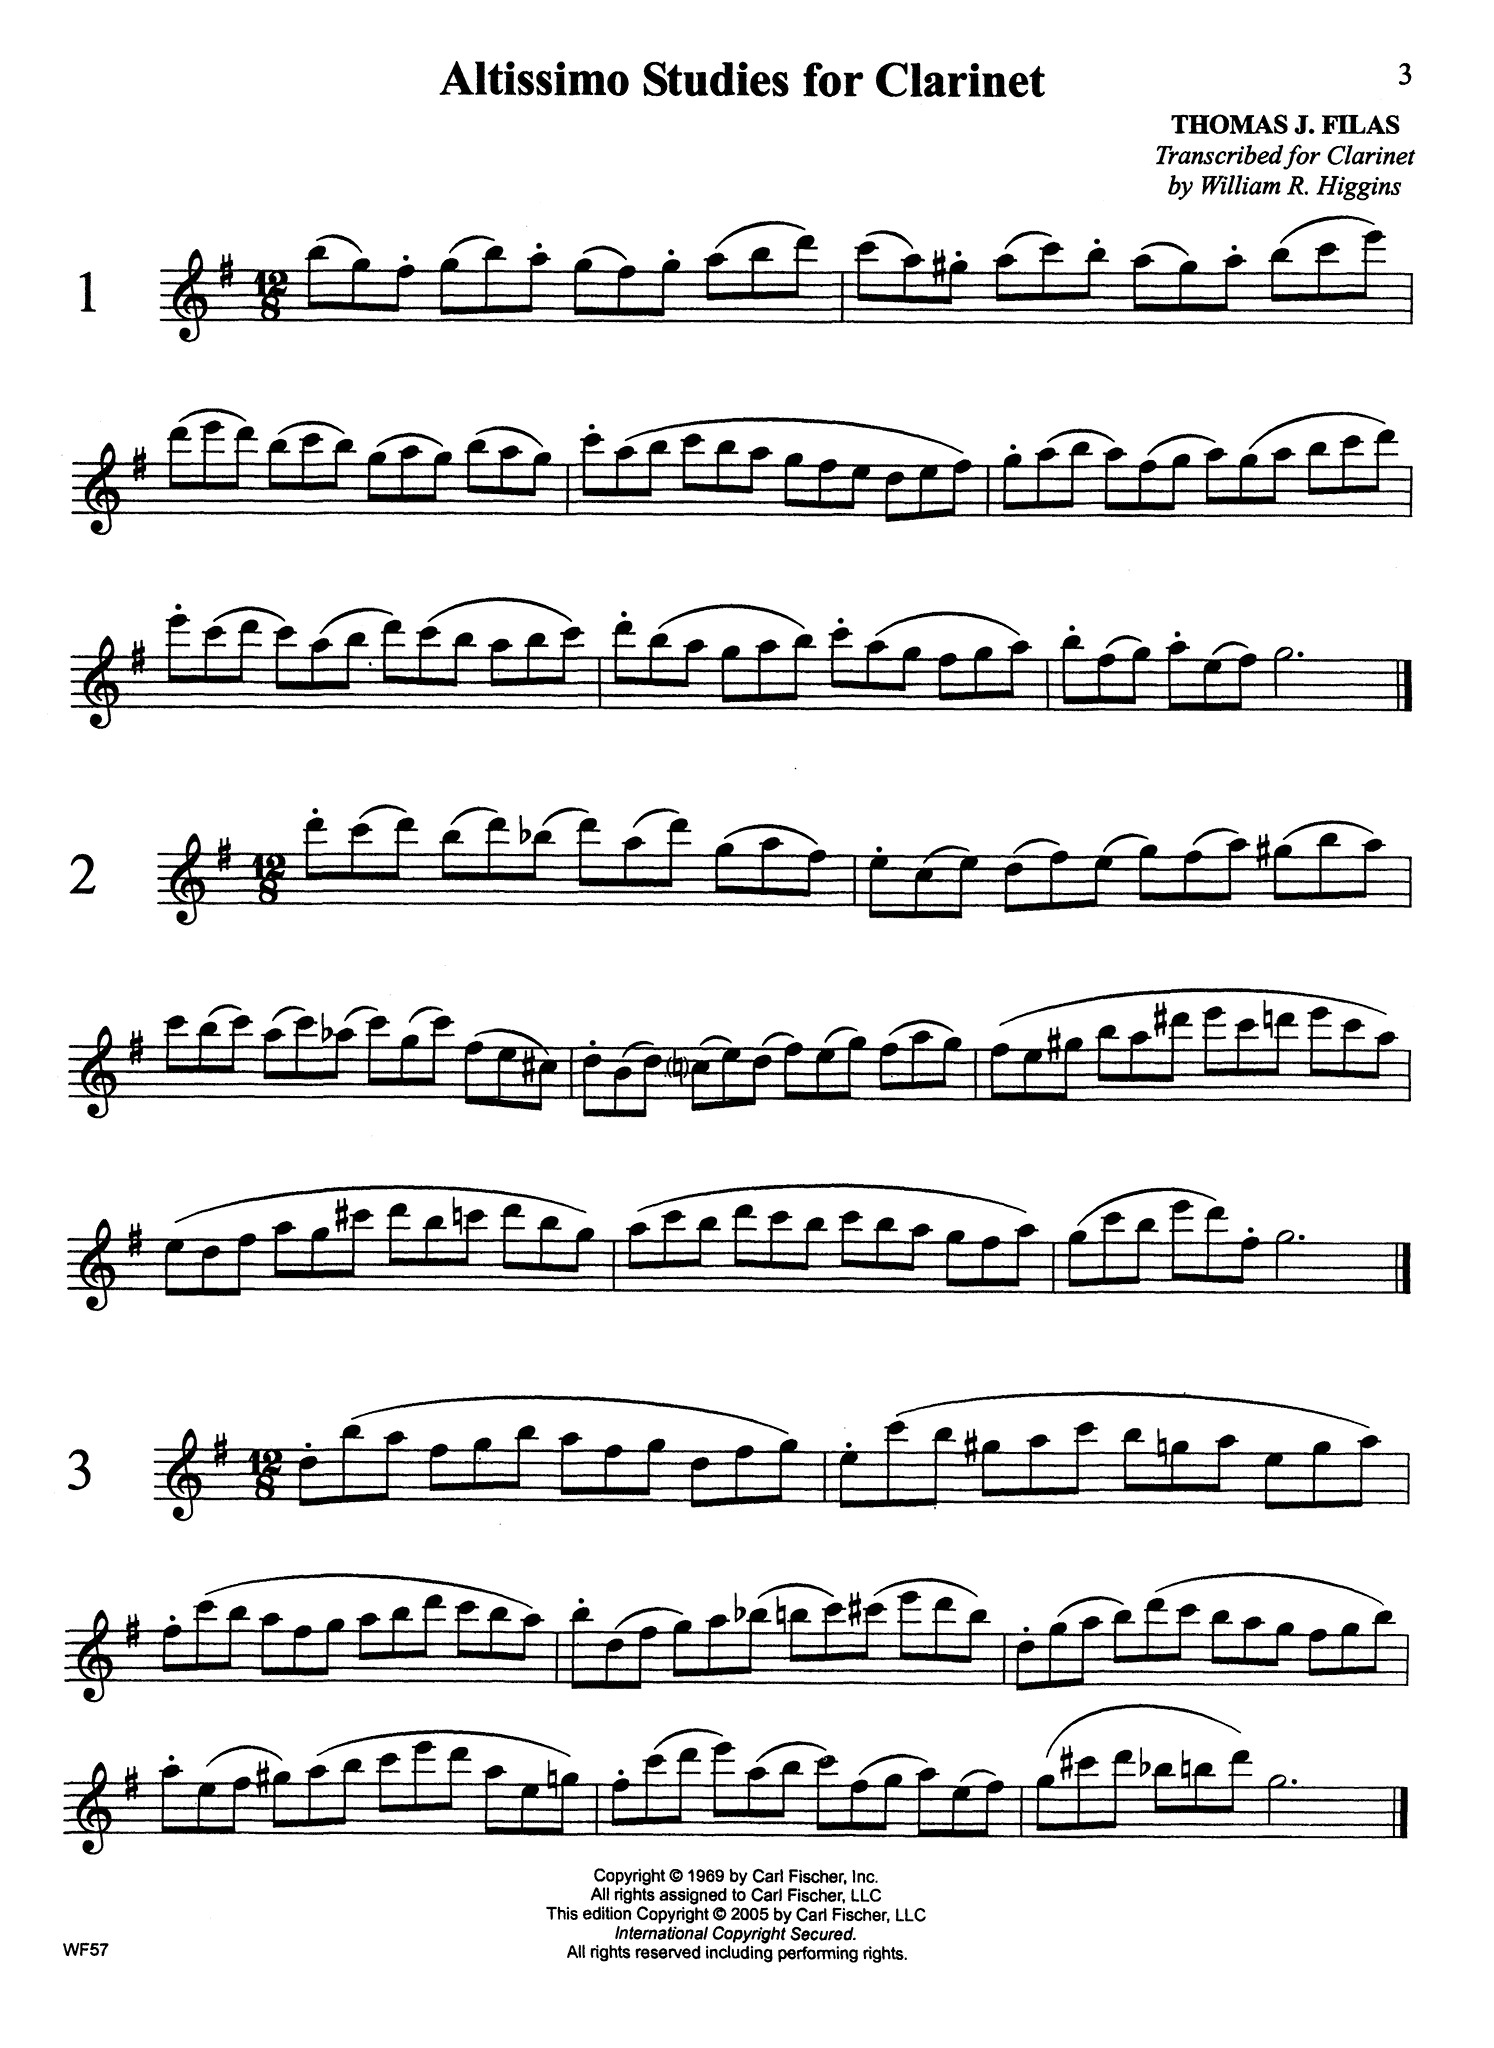 Altissimo Studies for Clarinet Page 3